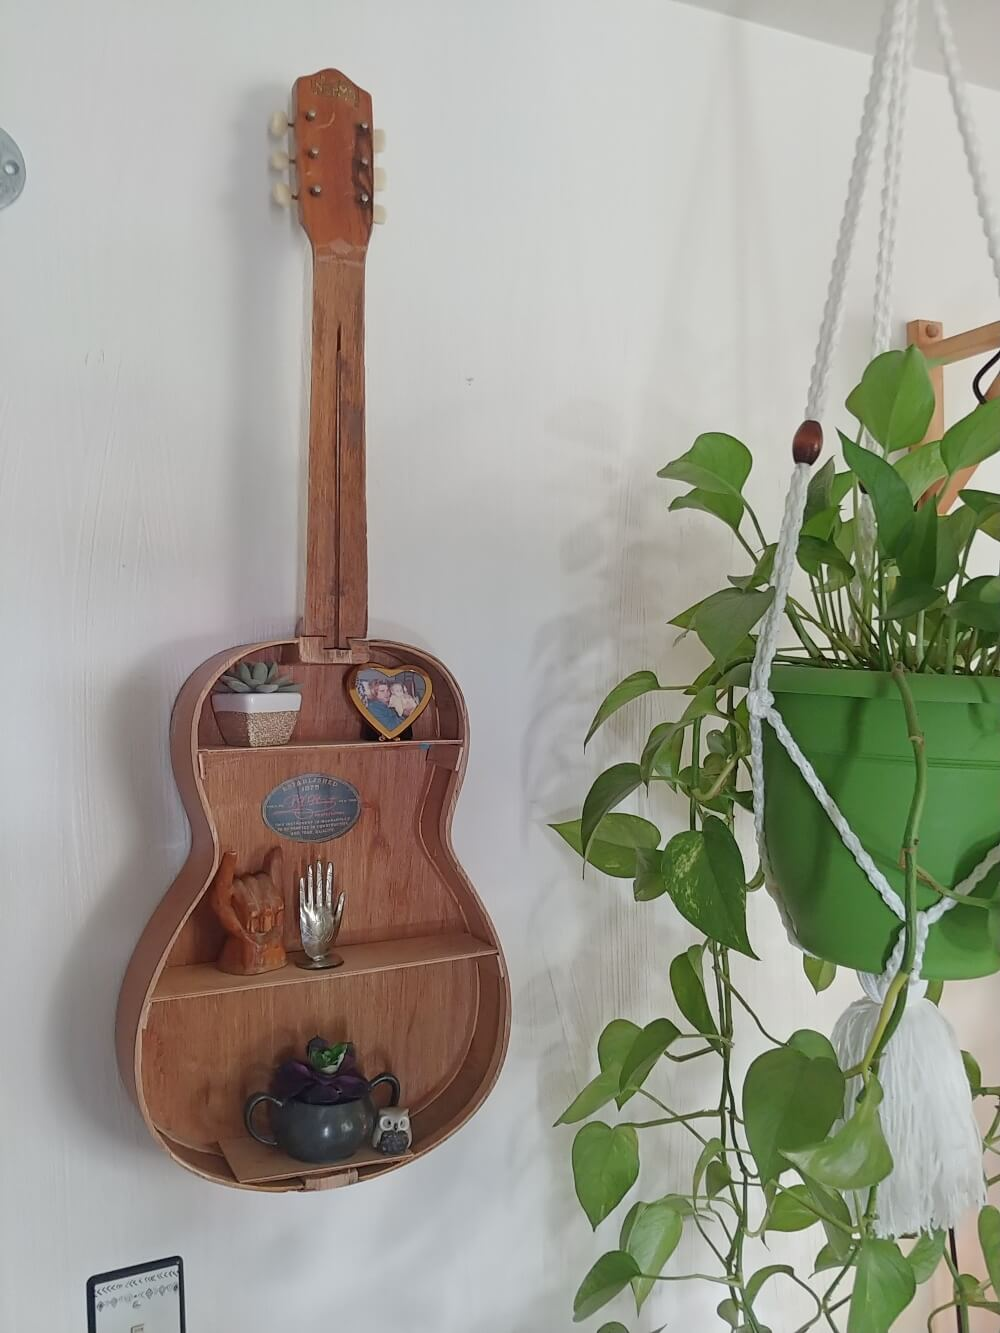 Upcycled Guitar Shelf - 7 Days of Thrift Shop Flips - Day One!